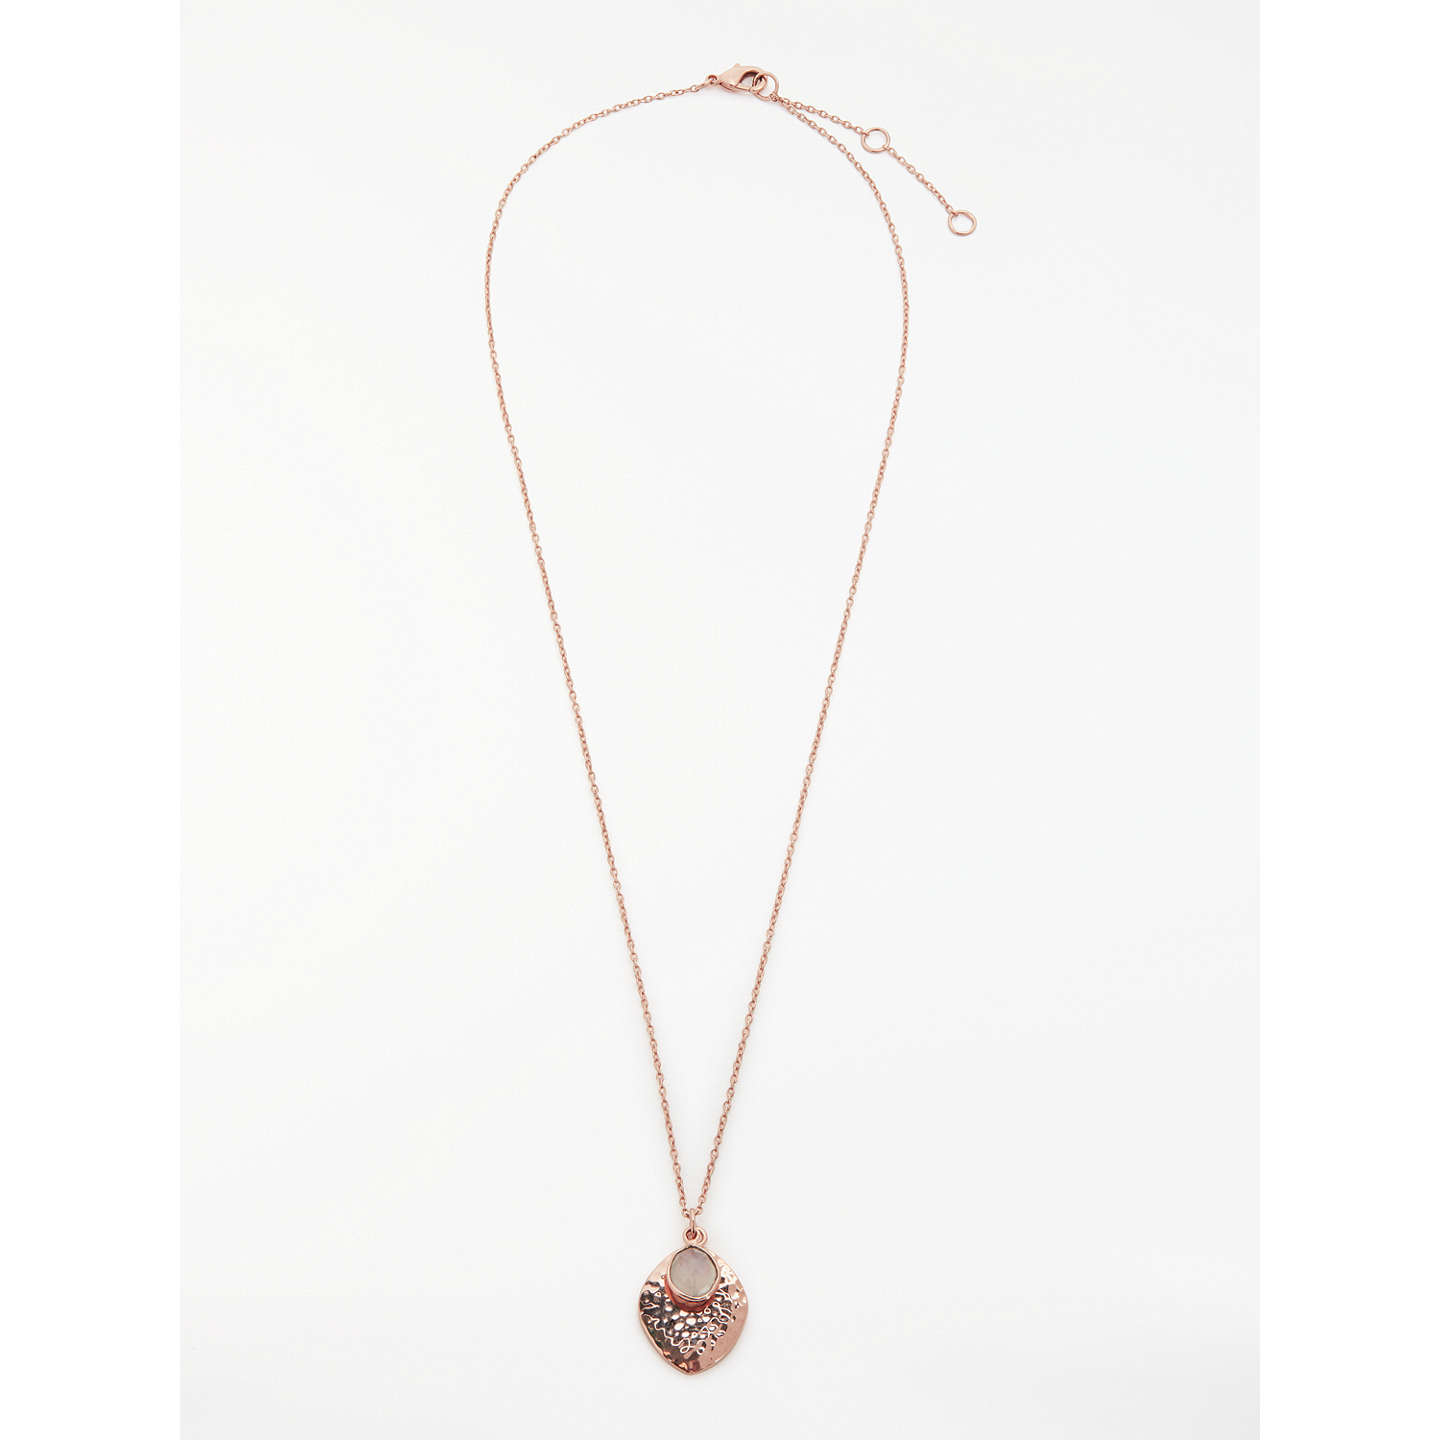 BuyJohn Lewis Semi-Precious Stone Hammered Disc Pendant Necklace, Rose Gold/Moonstone Online at johnlewis.com